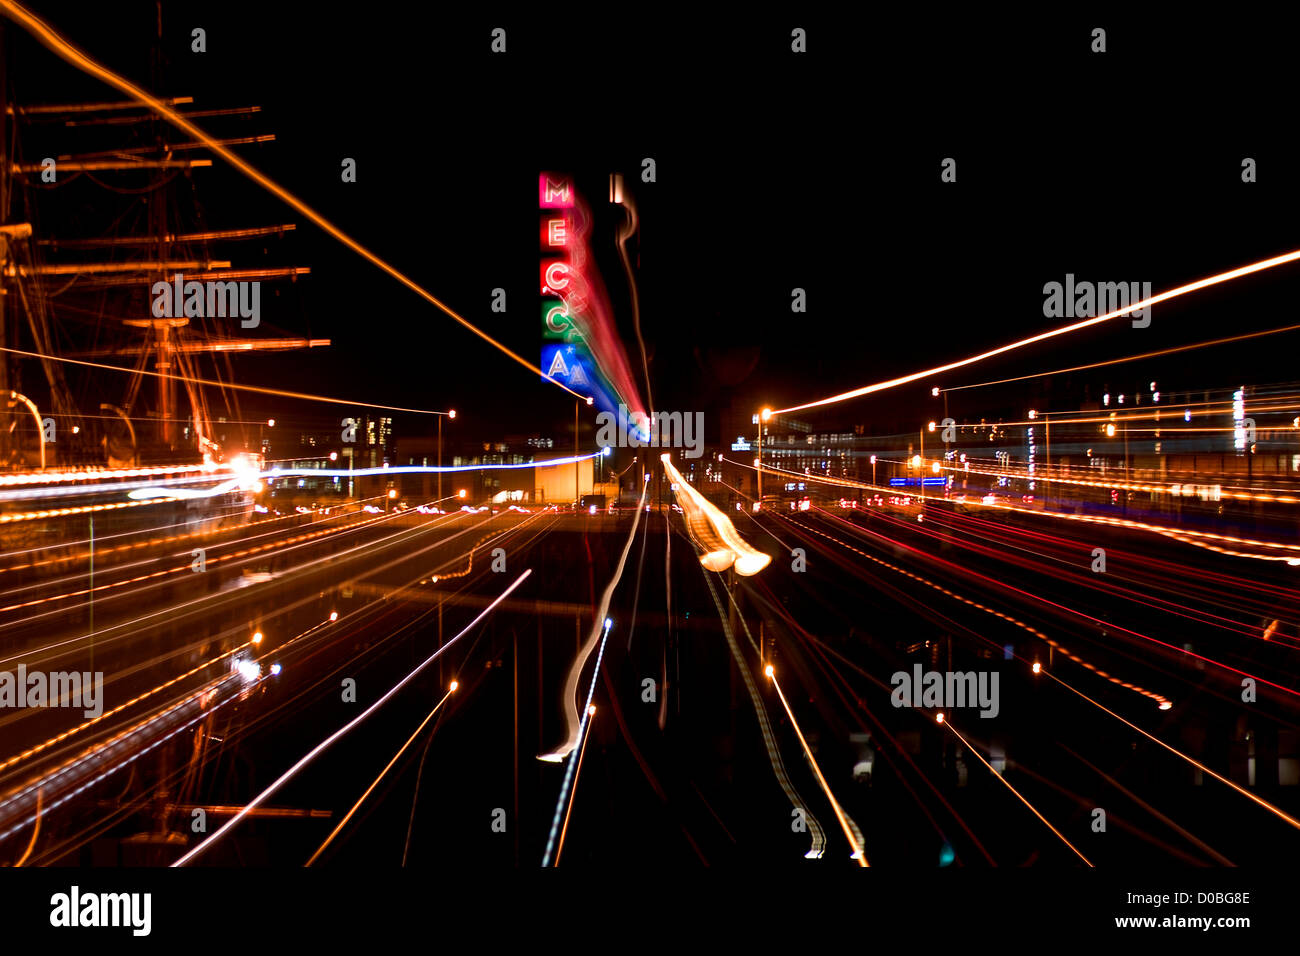 City and vehicle lights streaking across the city at night illuminating the sky over Dundee,UK - Stock Image